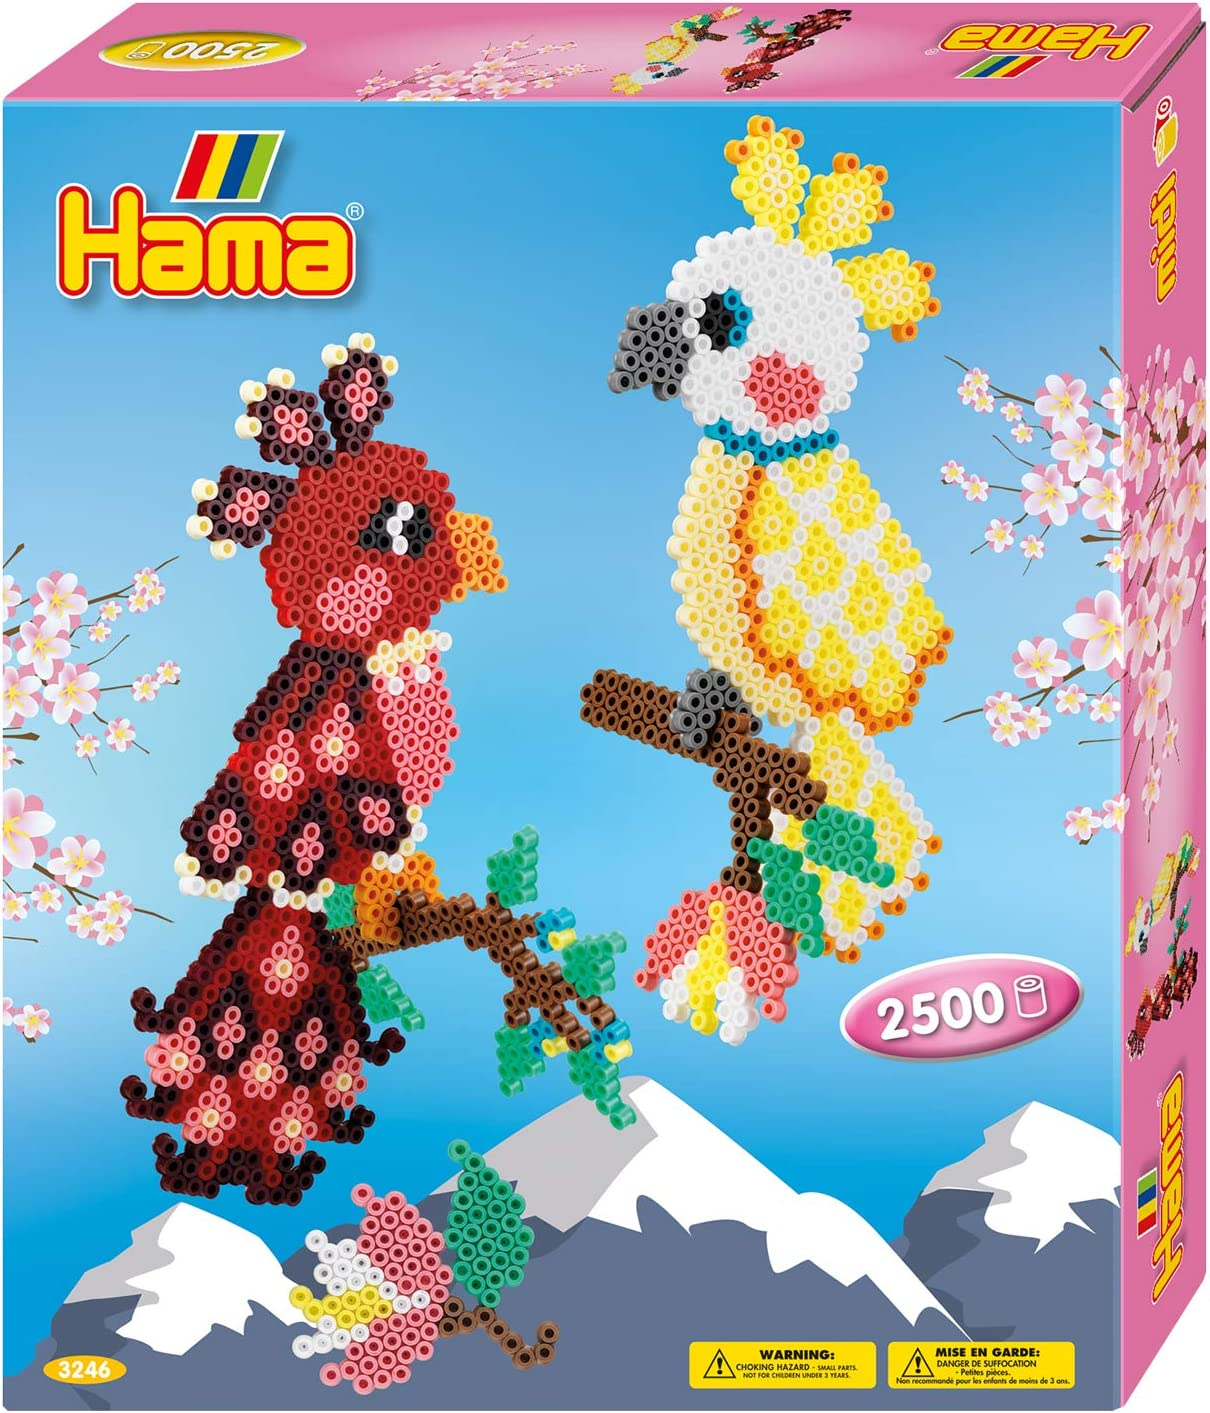 Mixed One Size Hama 3071 Beads Giant Open Gift Box Pink